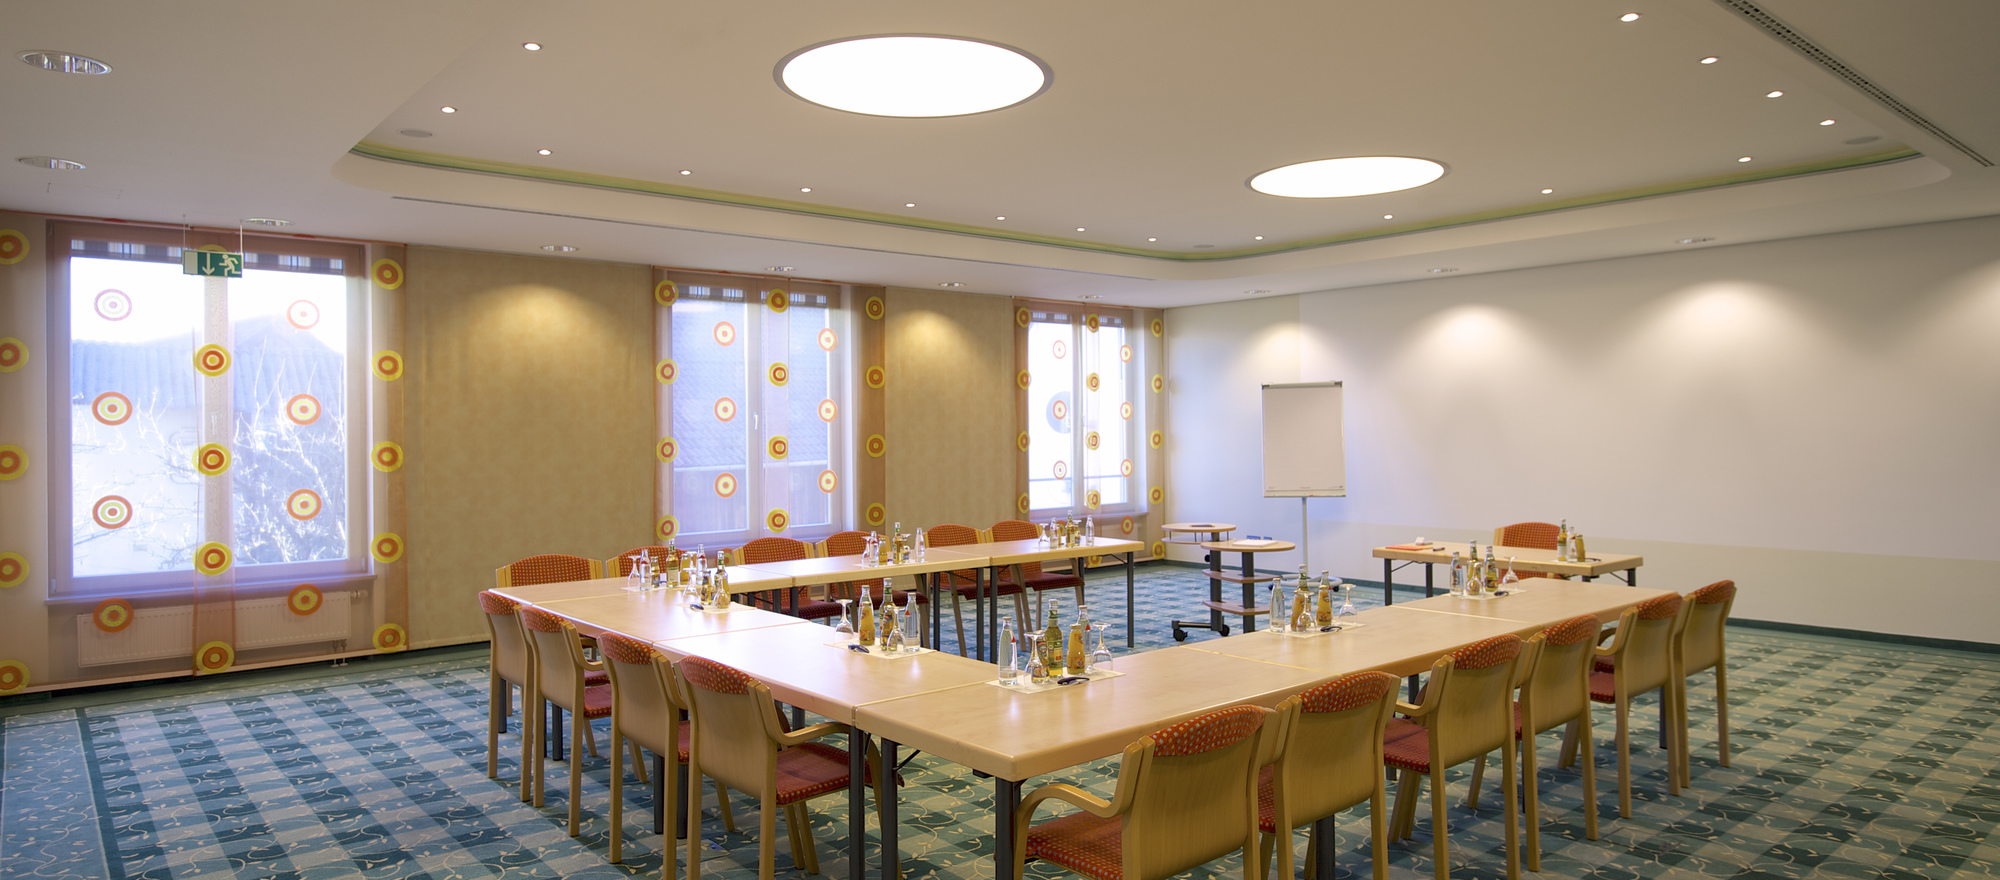 Conference room in the Ringhotel Krone in Friedrichshafen, 4-stars superior hotel at the Bodensee lake